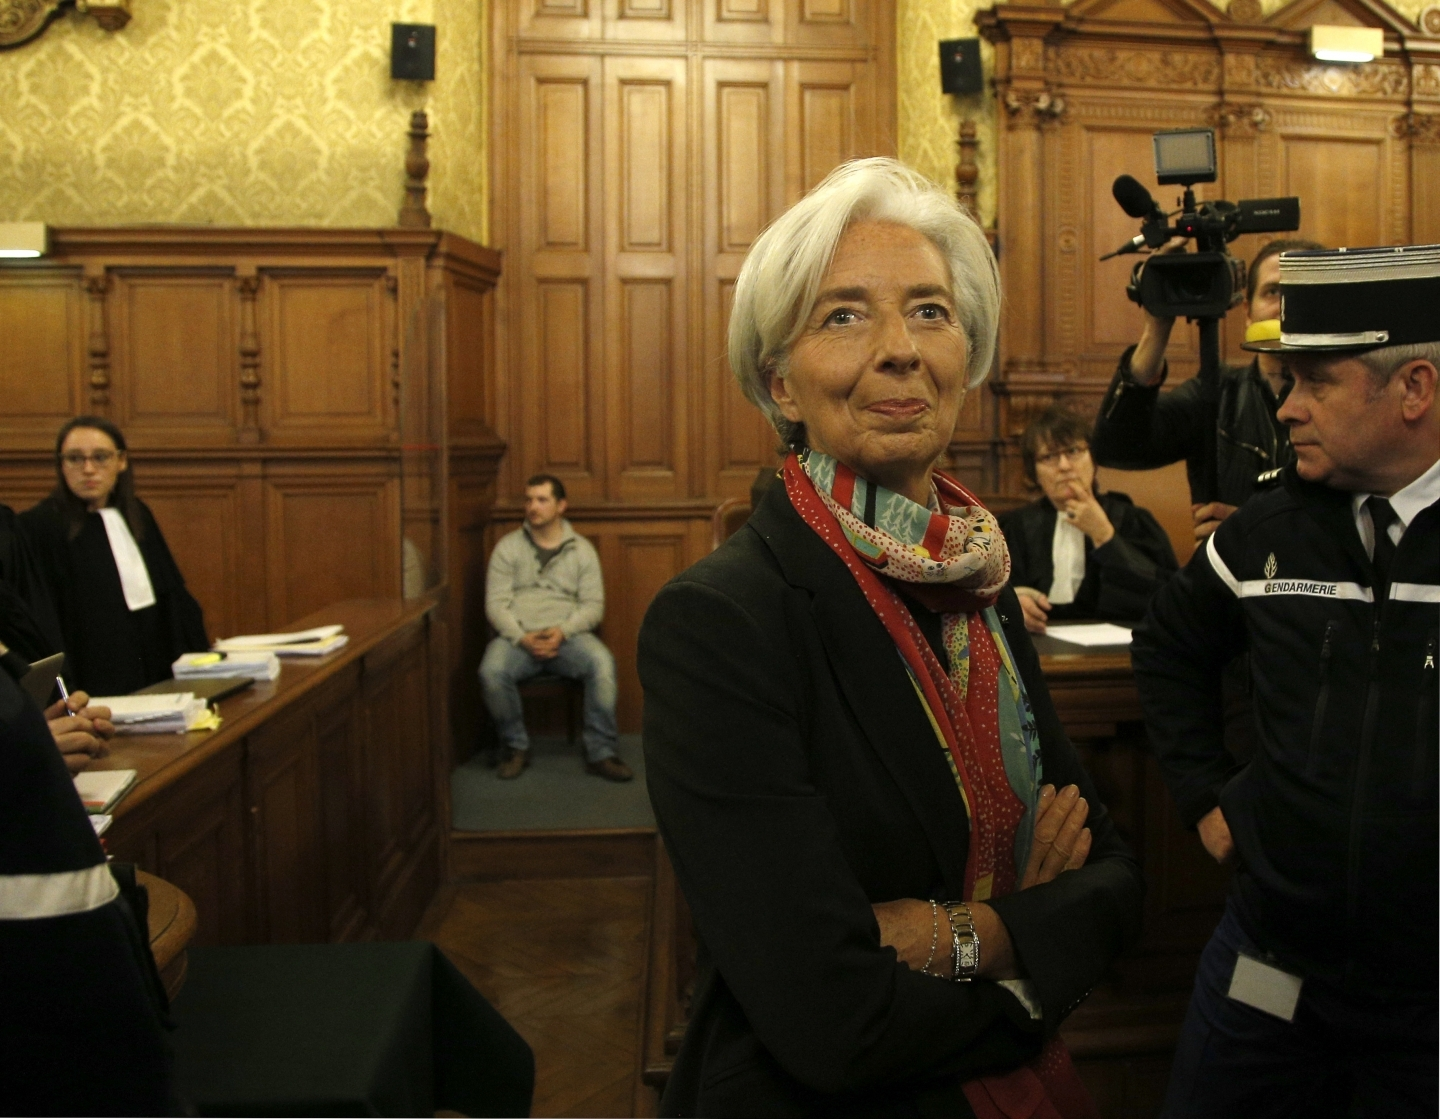 International Monetary Fund chief Christine Lagarde arrives at the special Paris court, France, Monday, Dec. 12, 2016 (AP Photo / Thibault Camus)